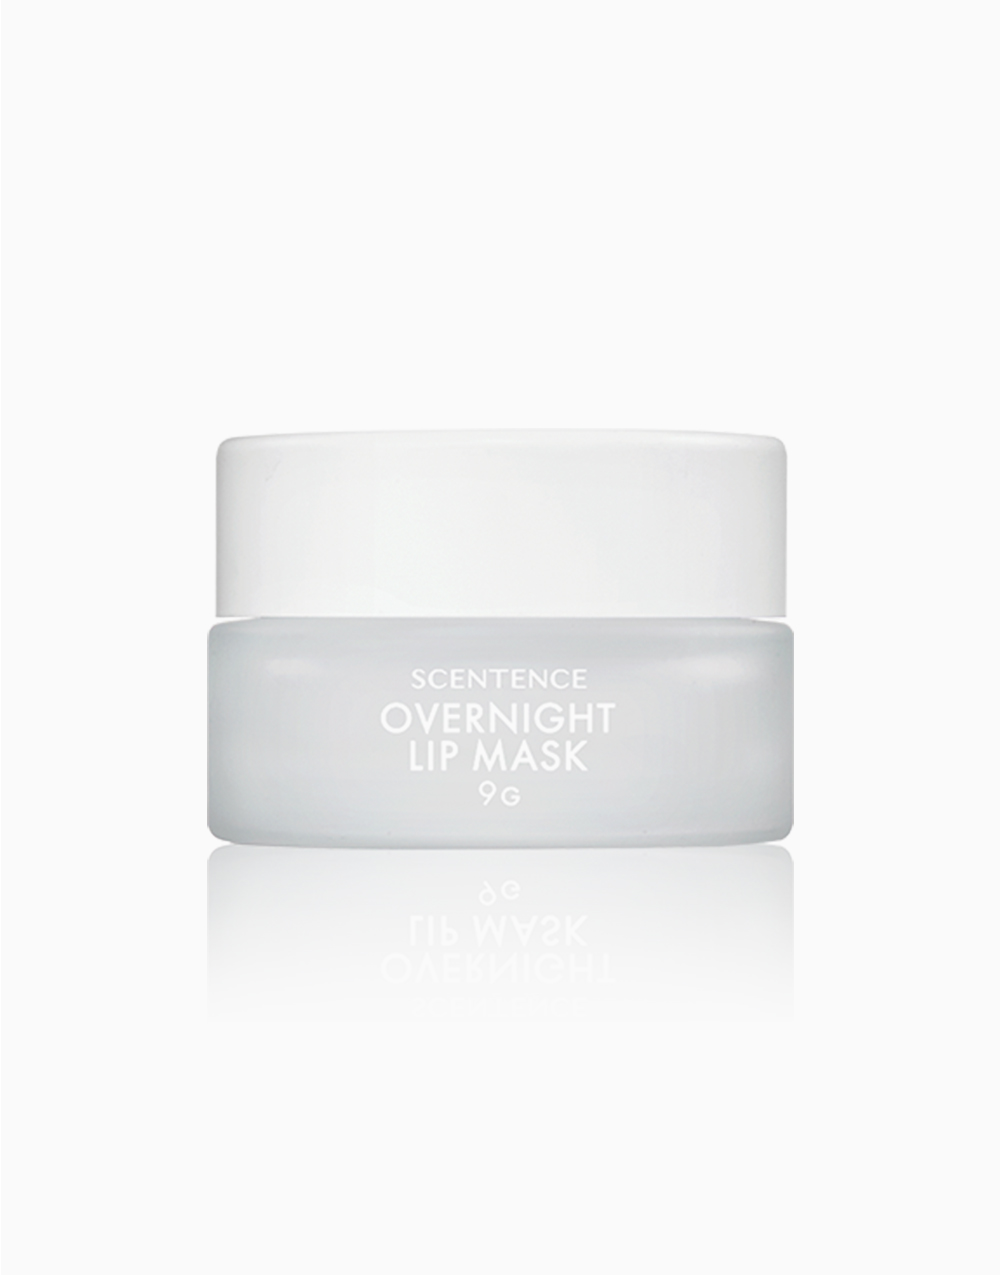 Overnight Lip Mask by Scentence